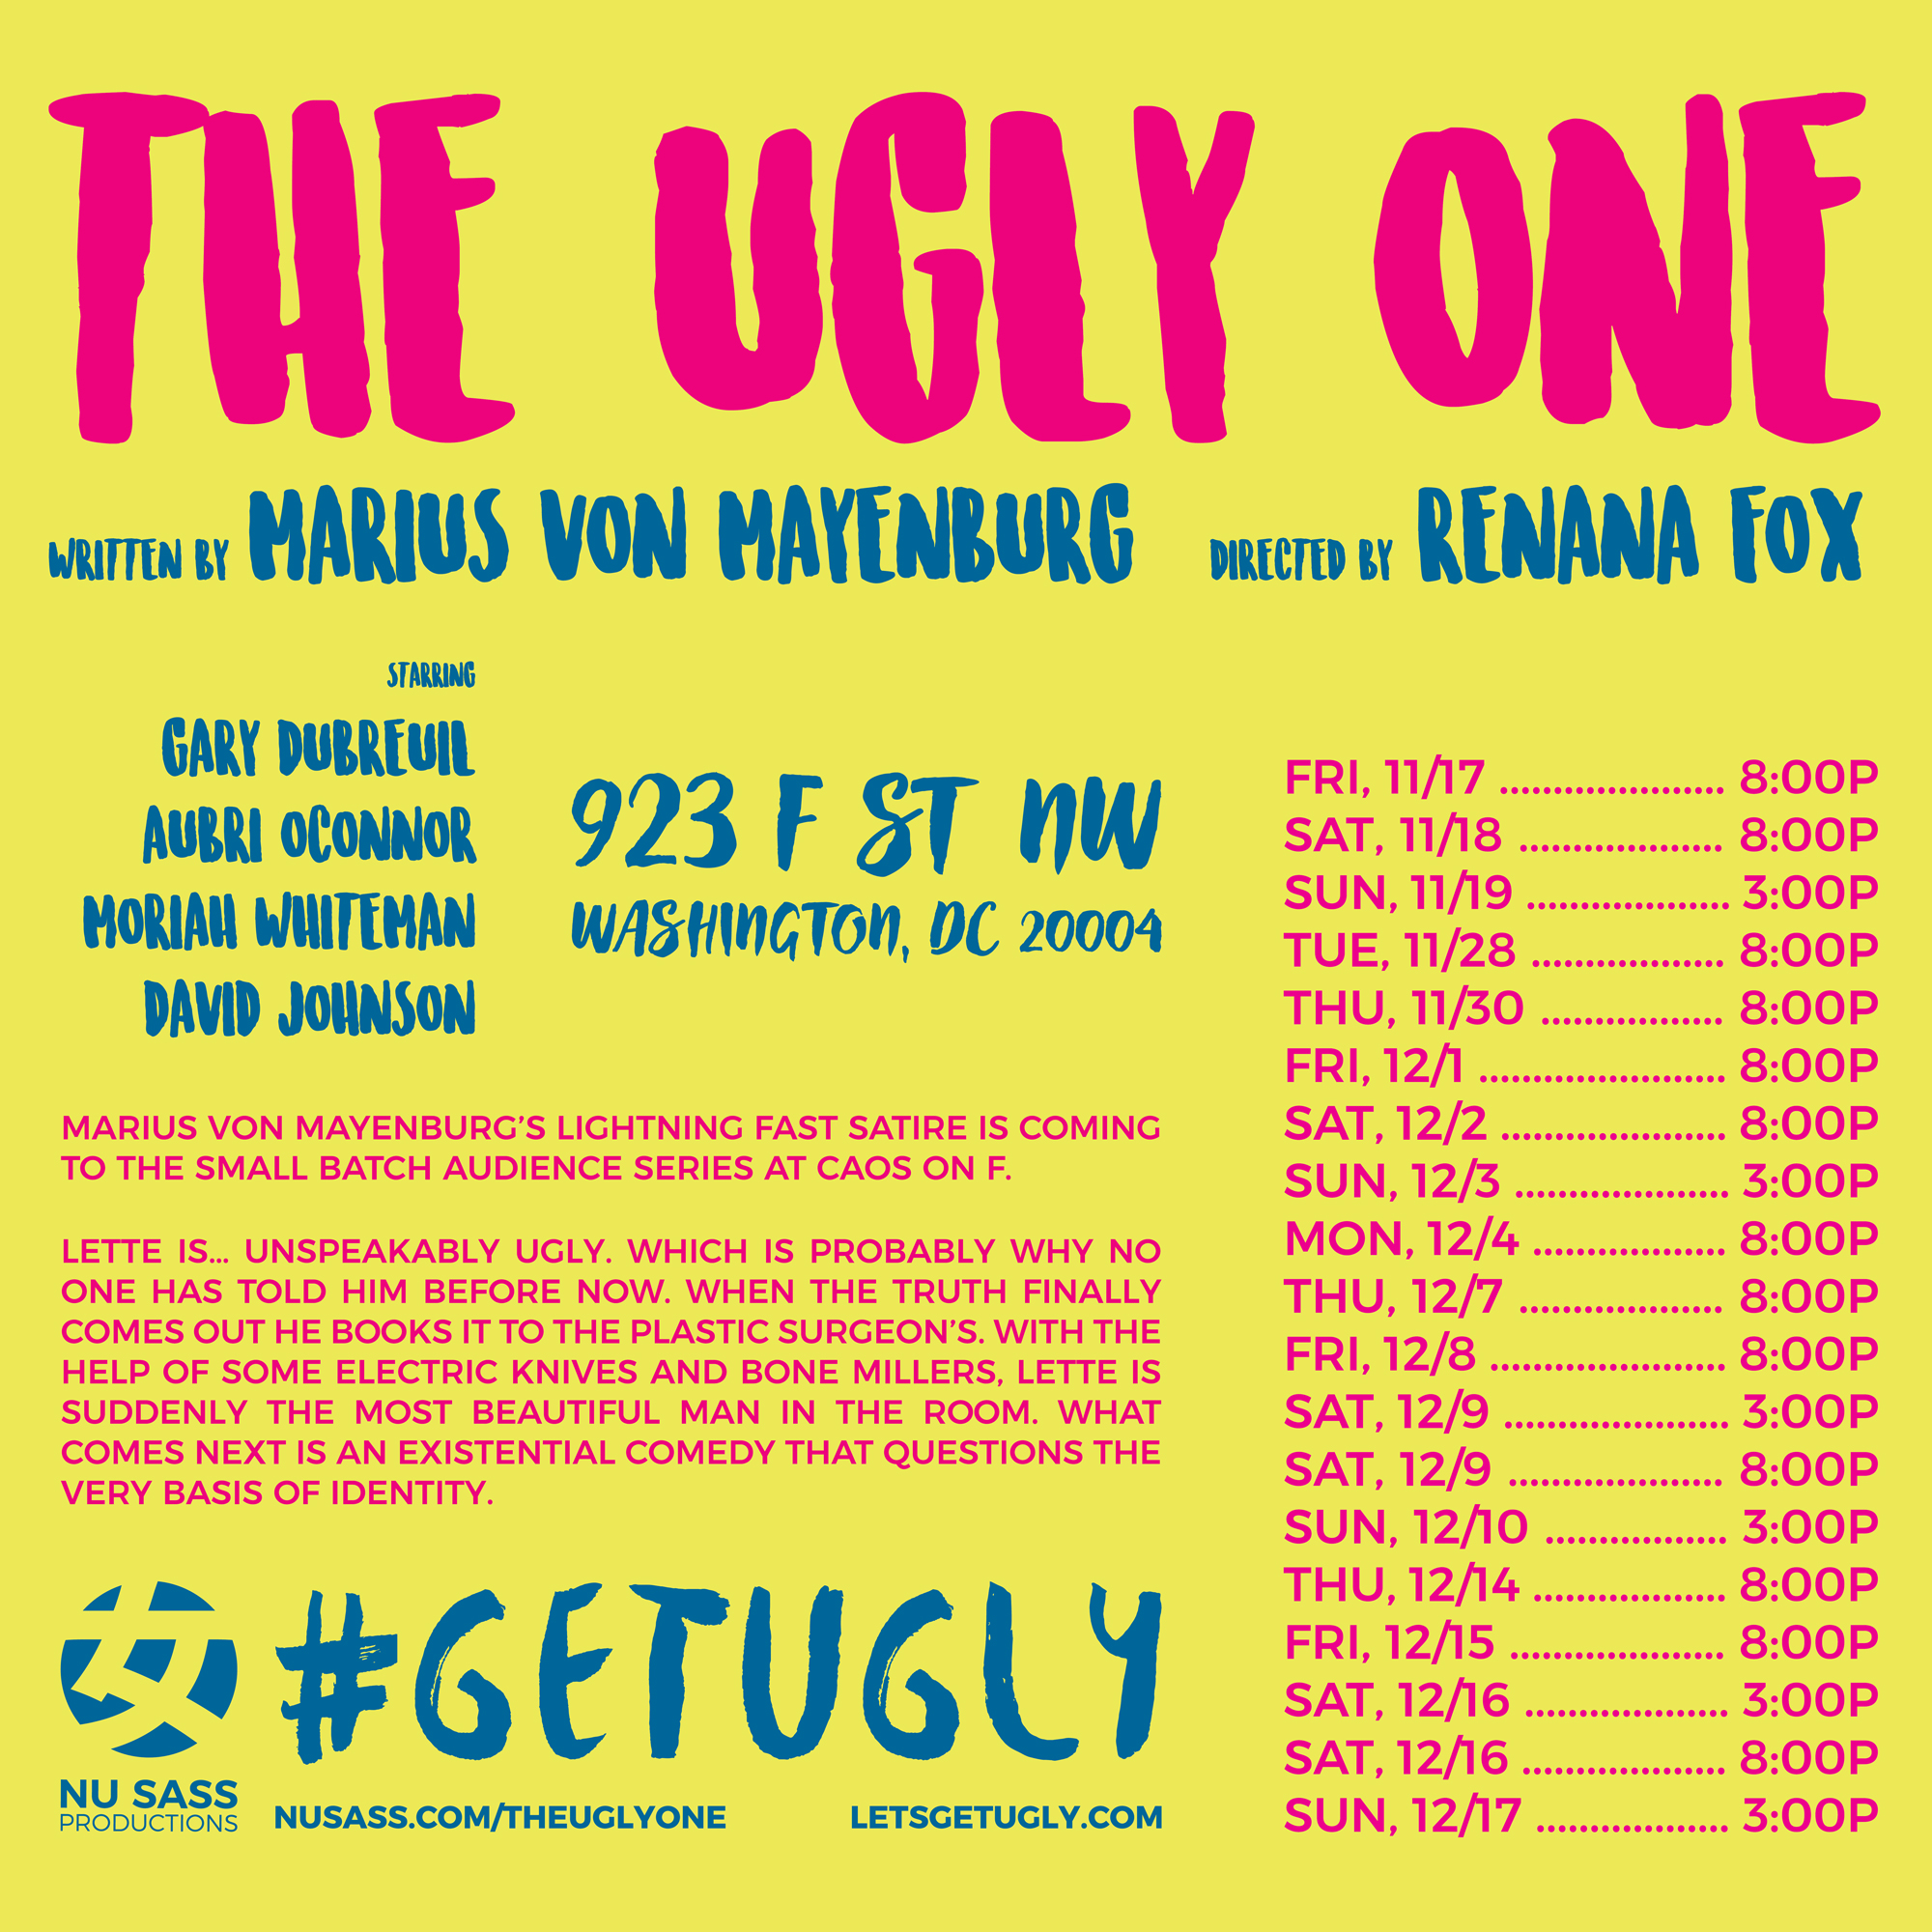 The-Ugly-One-Yellow---IG-SQUARE-02.jpg